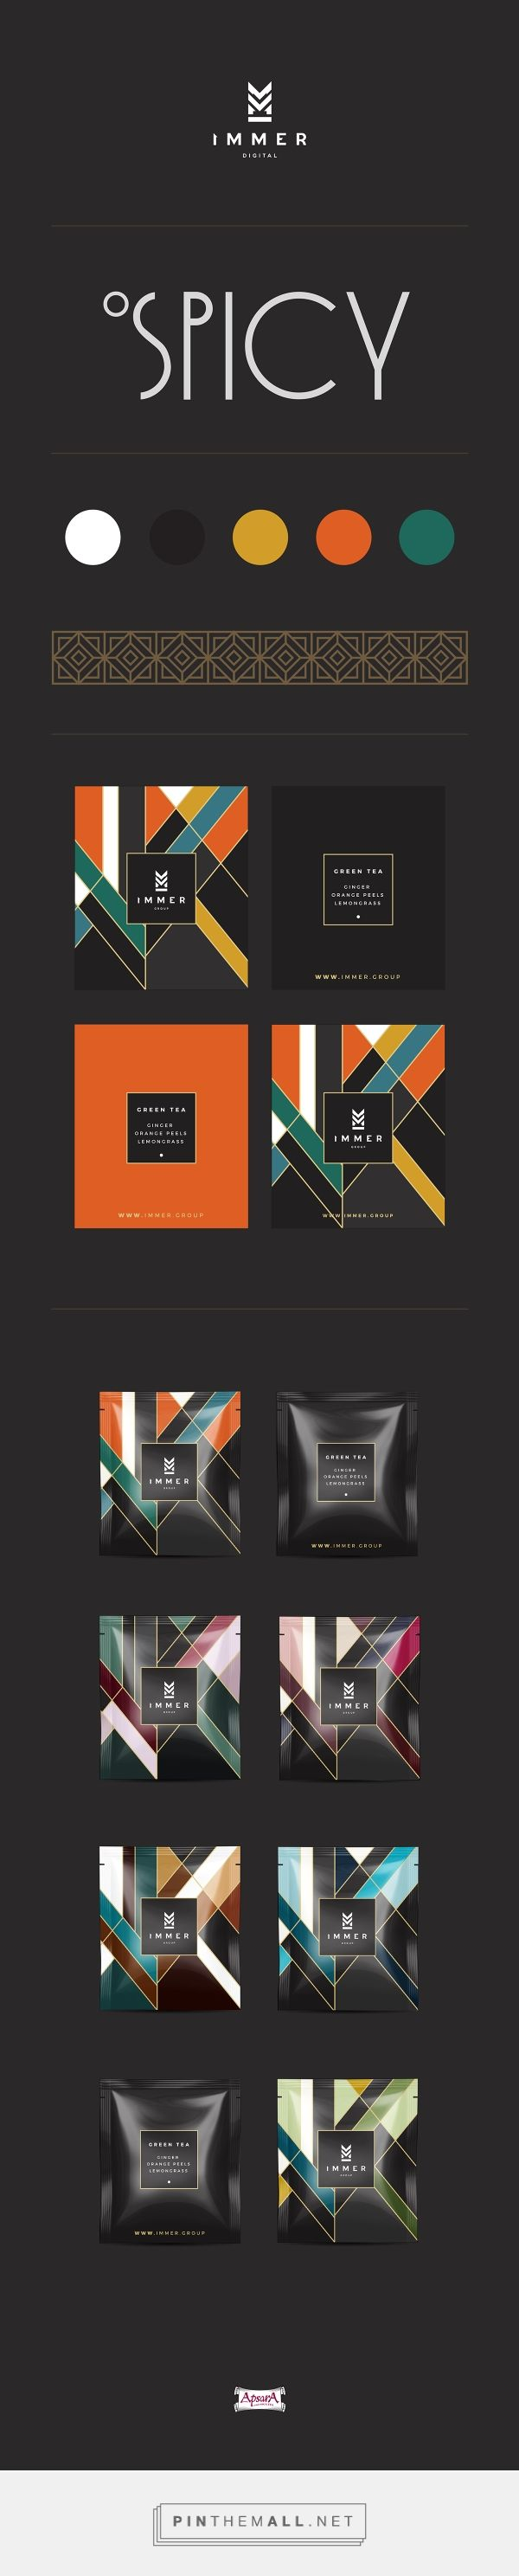 Immer Tea Packaging by Gundega Bruvere | Fivestar Branding Agency – Design and Branding Agency & Curated Inspiration Gallery